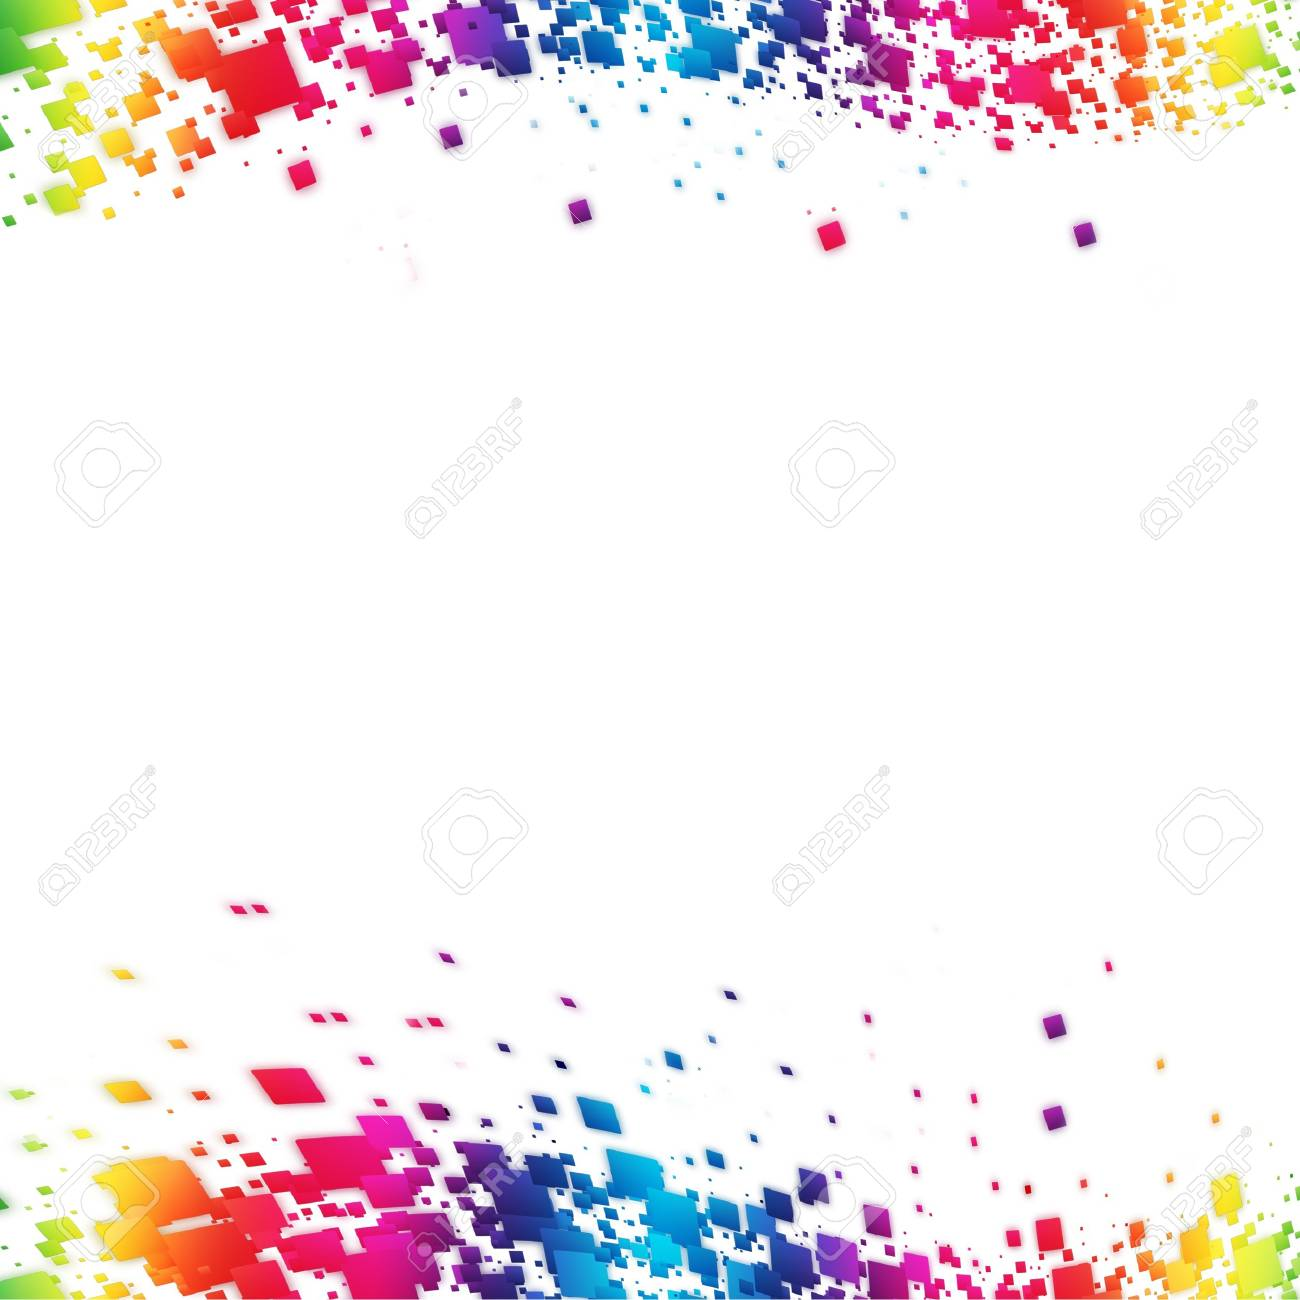 Colorful Abstract lights background Stock Photo - 16155929